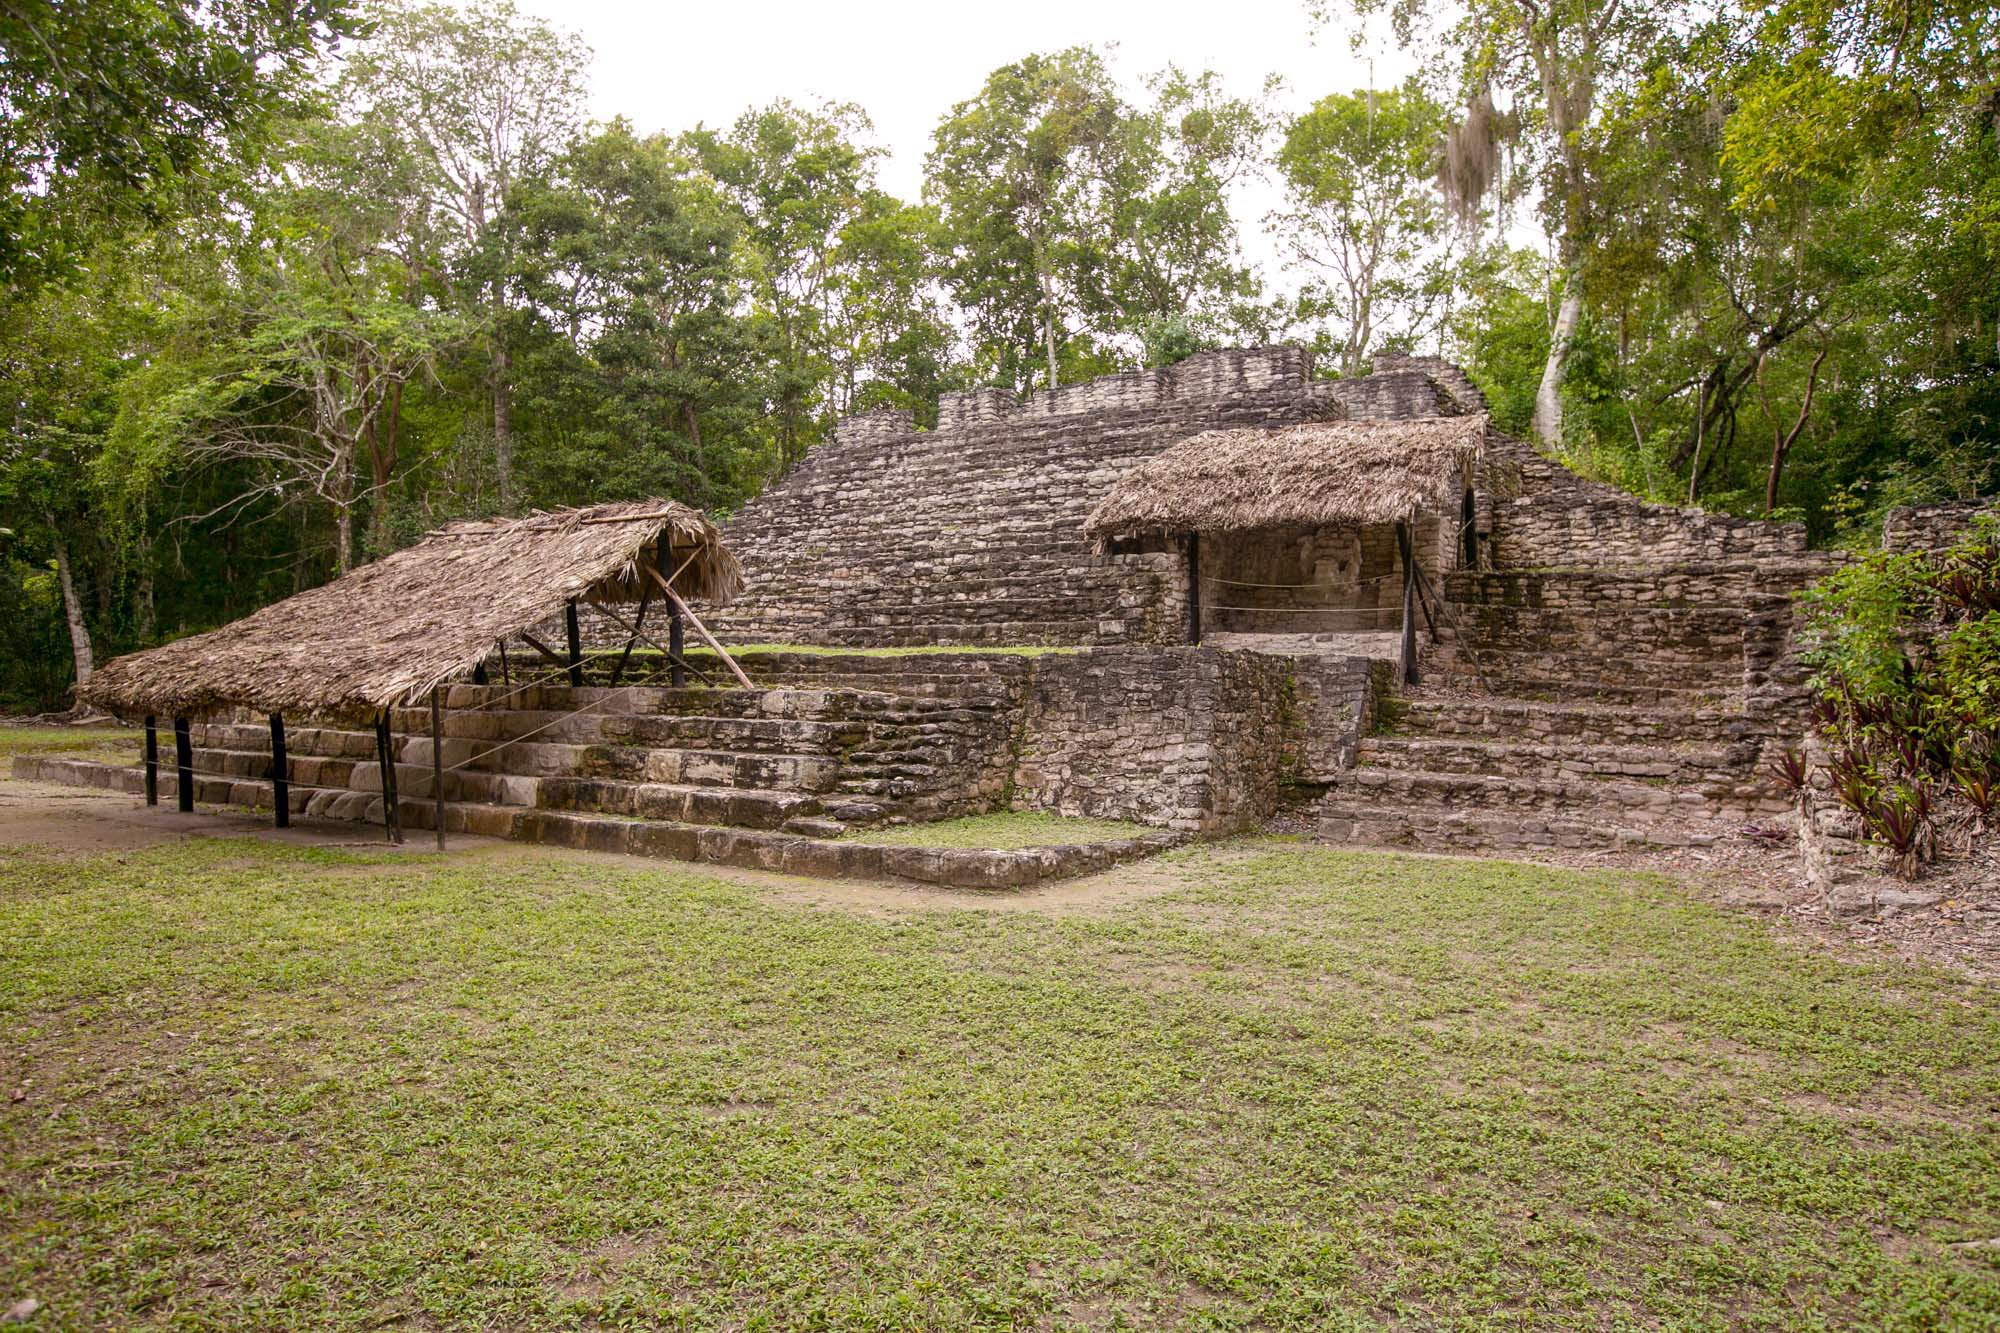 Edificio 14 at Mayan ruins of Dzibanche in Mexico